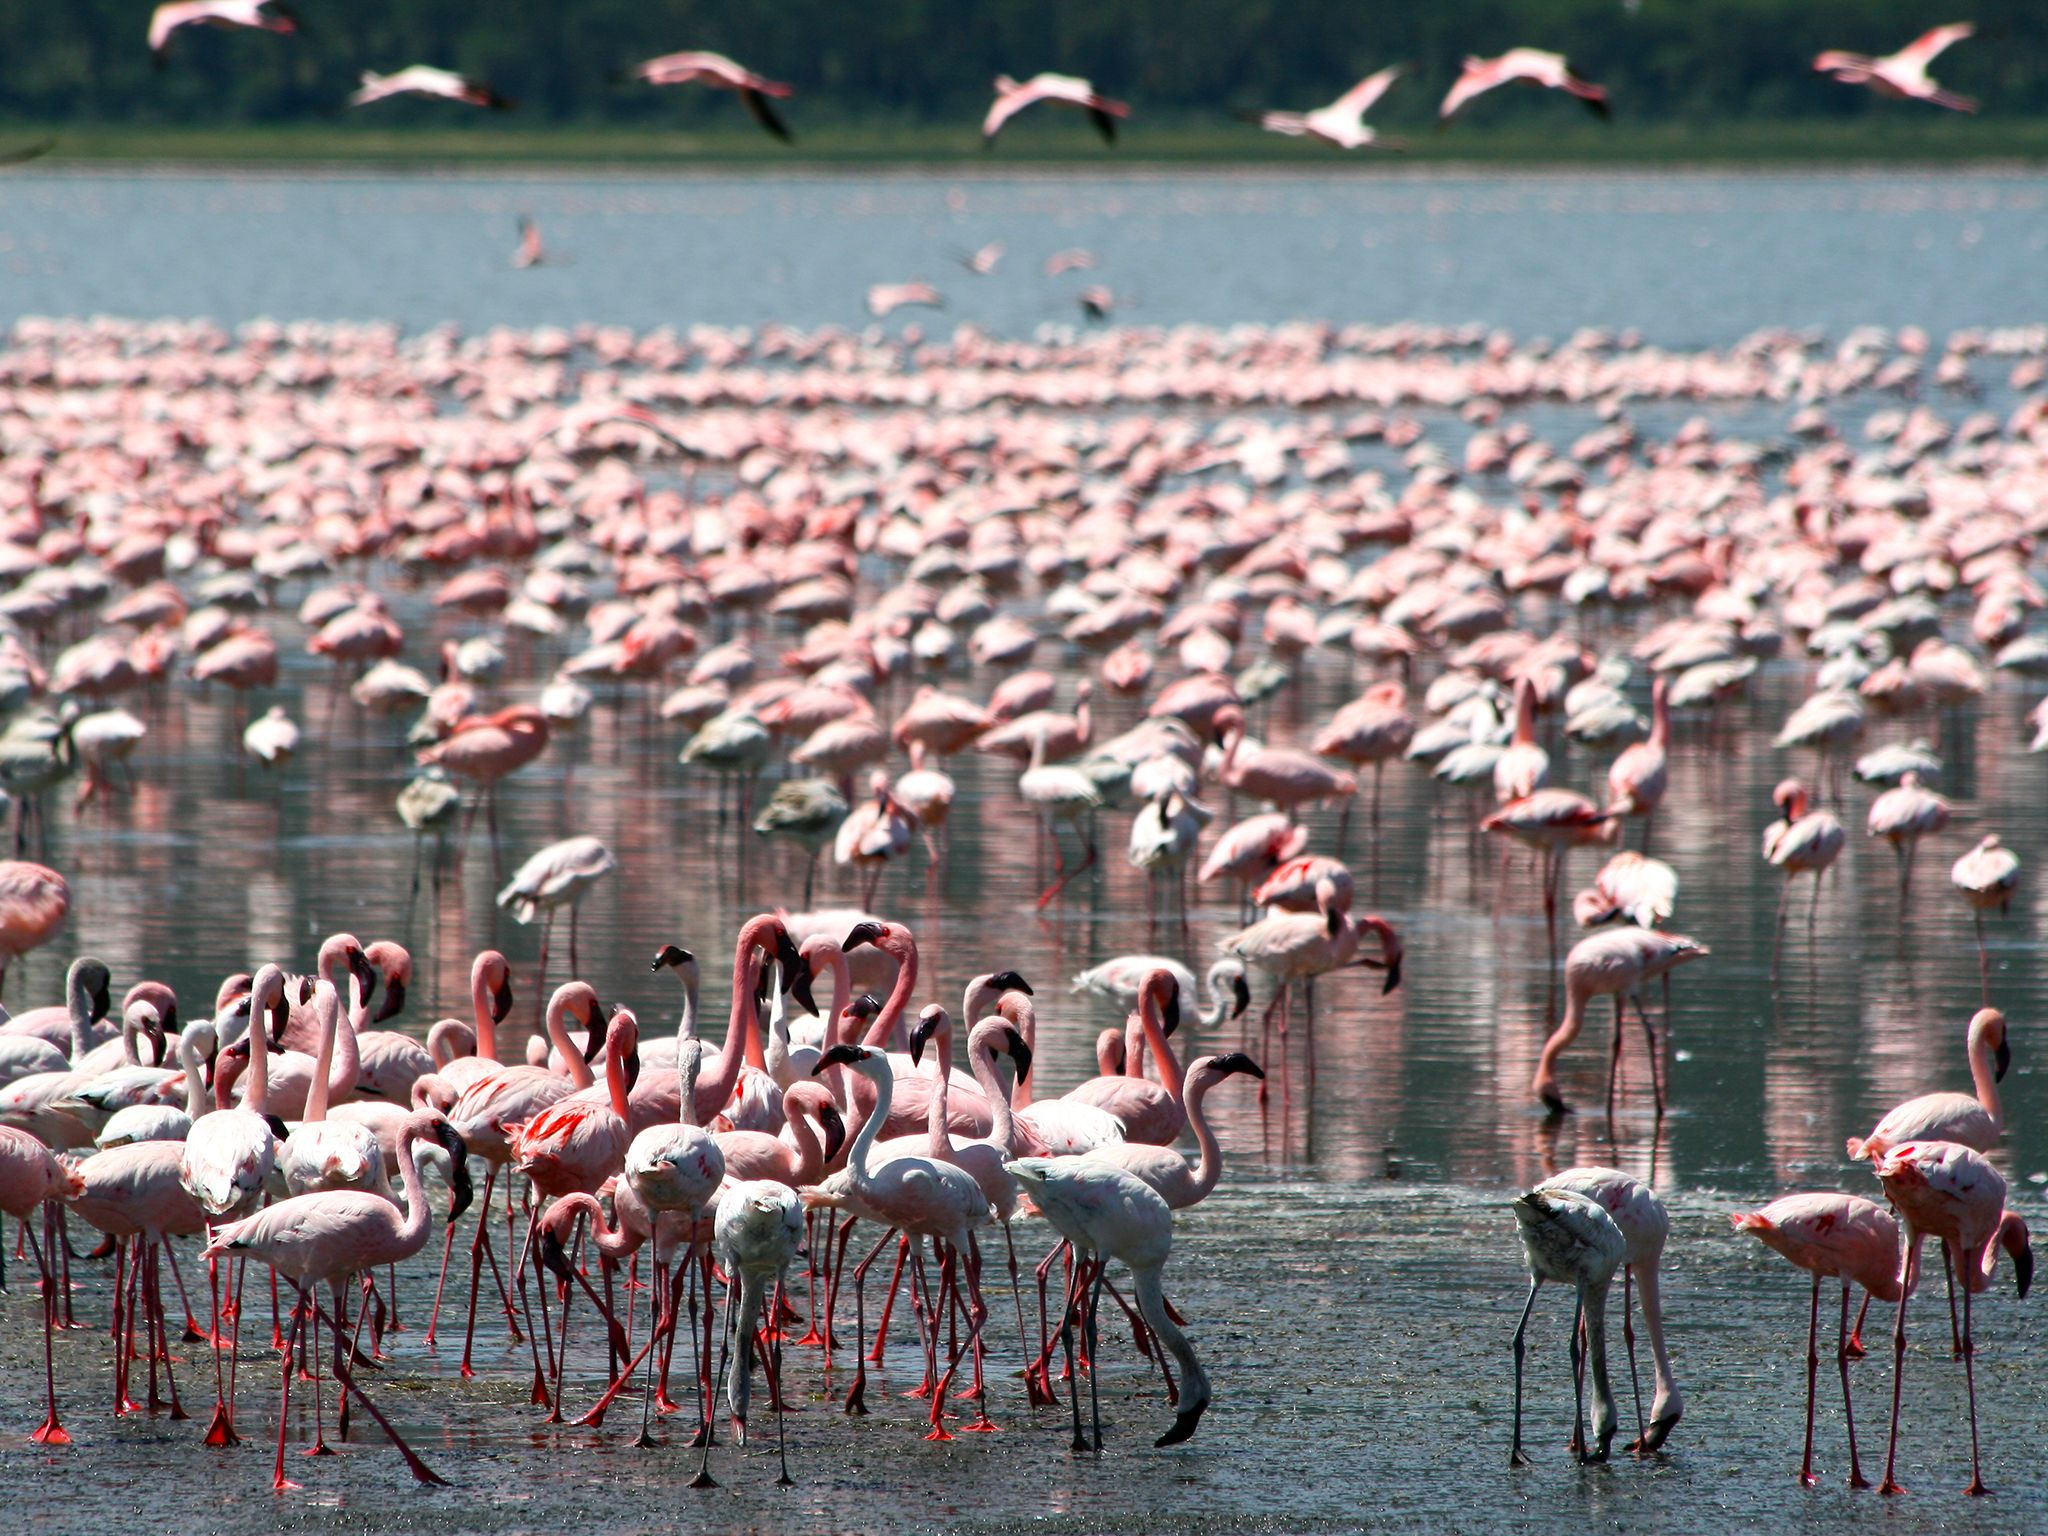 Nakuru Lake, Kenya: The Nakuru Lake's abundance of algae attracts the vast quantity of flamingos ... [Photo of the day - January 2015]